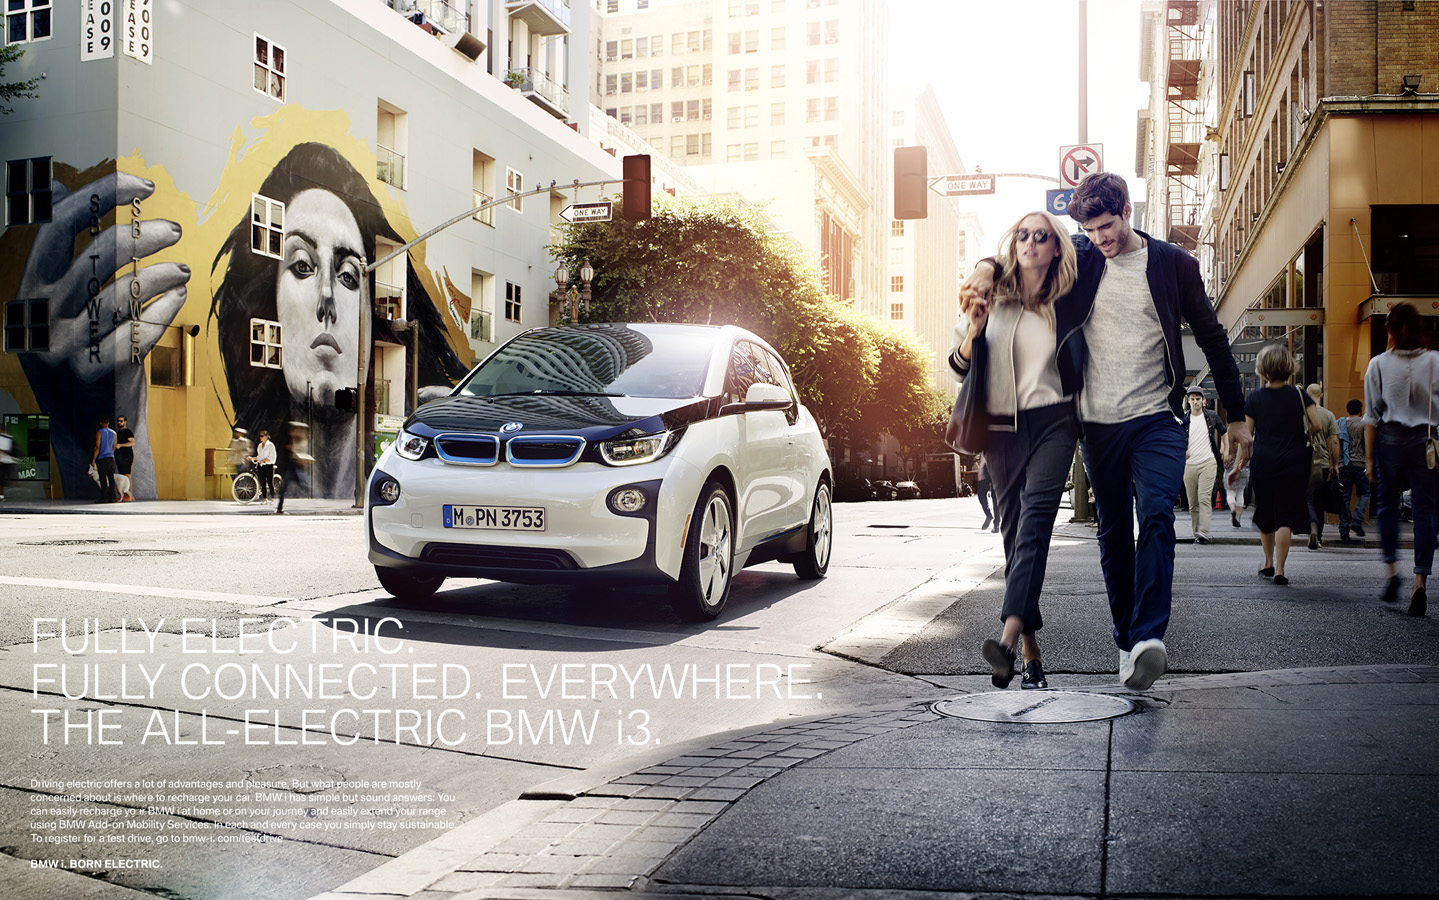 Bmw Taps Uwe Duettmann To Shoot Campaign Promoting Its Sporty New